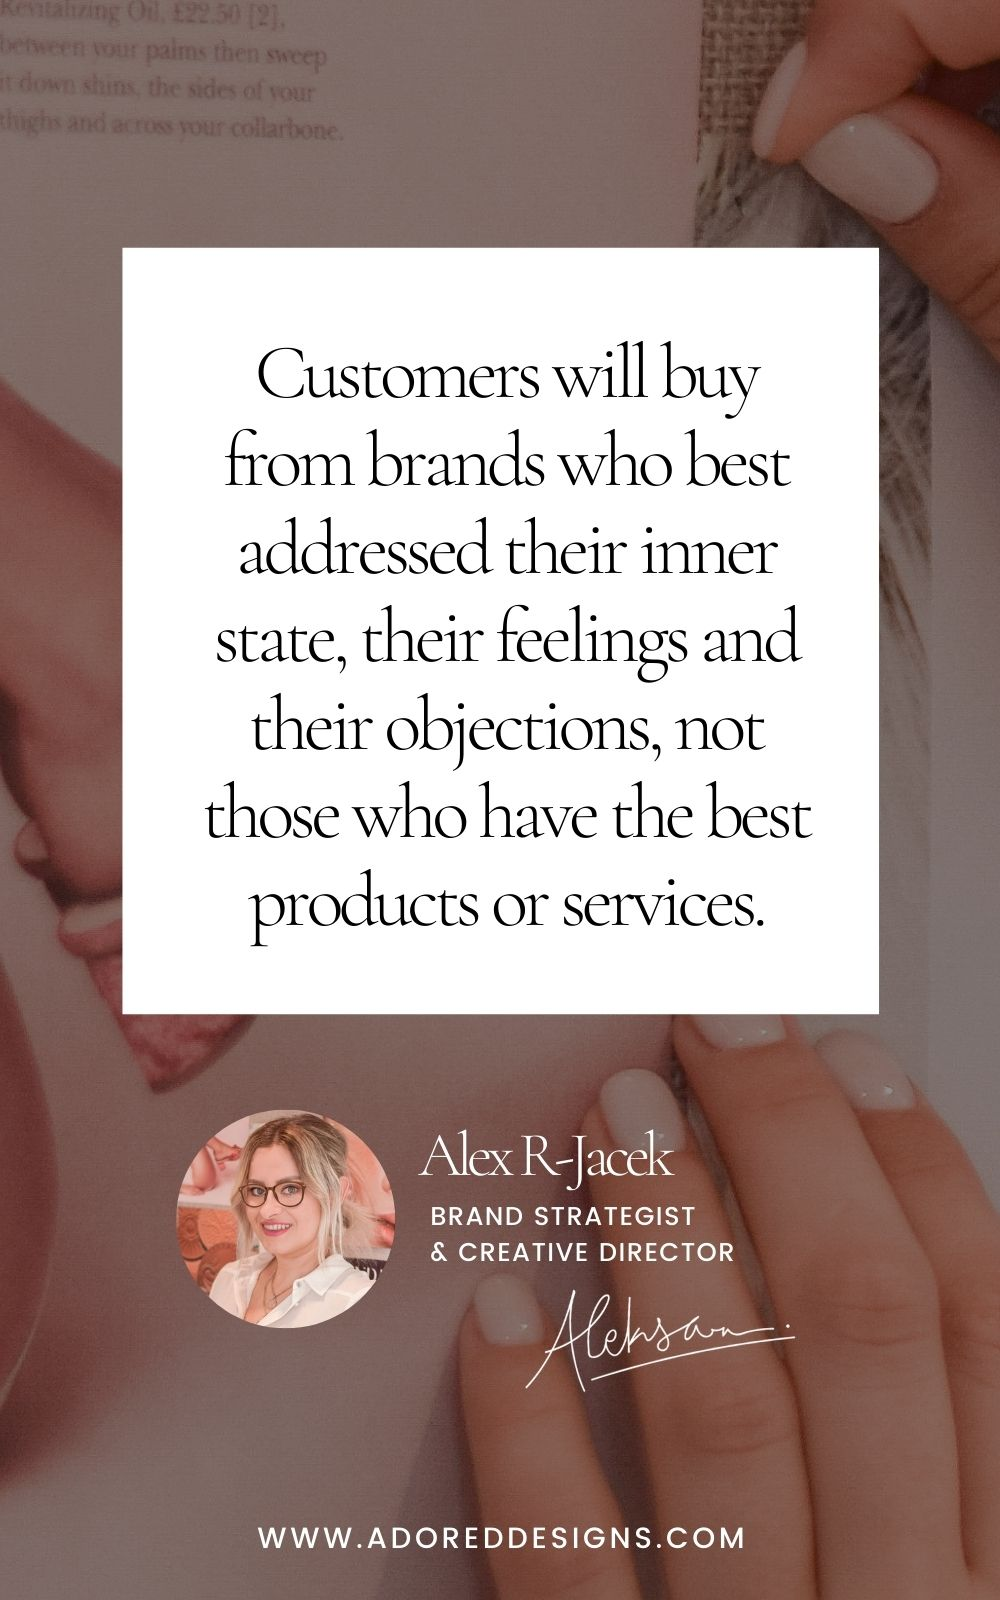 Selling psychology: Customers will buy from brands who best addressed their inner state, their feelings and their objections, not those who have the best products or services